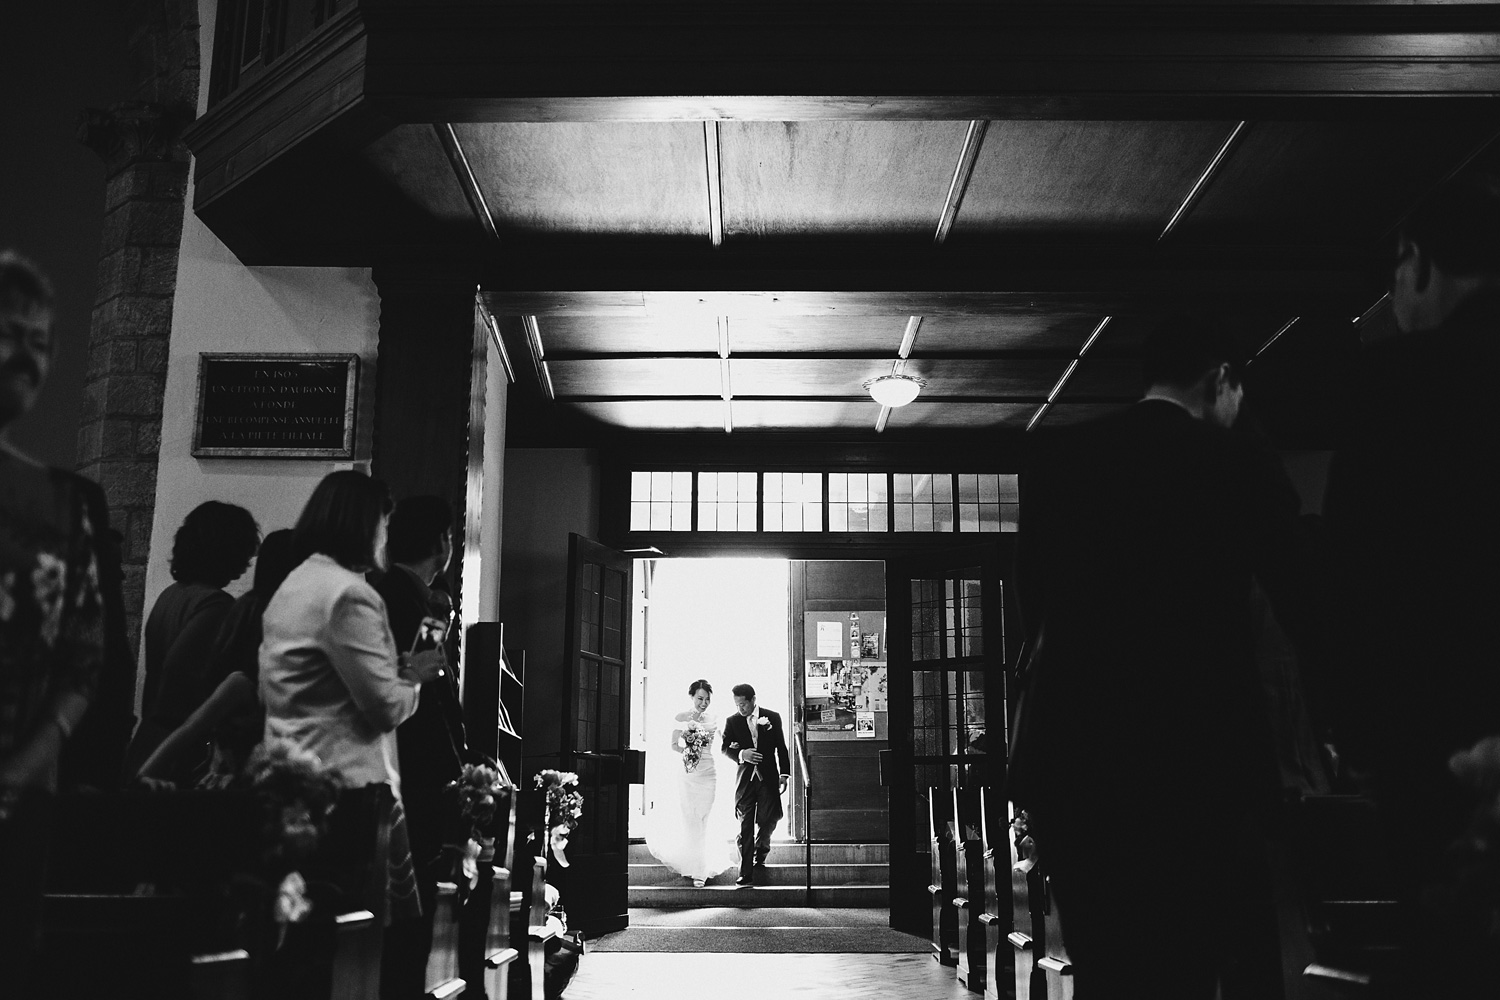 027-Guy&Yukie-Swizterland-Wedding.jpg